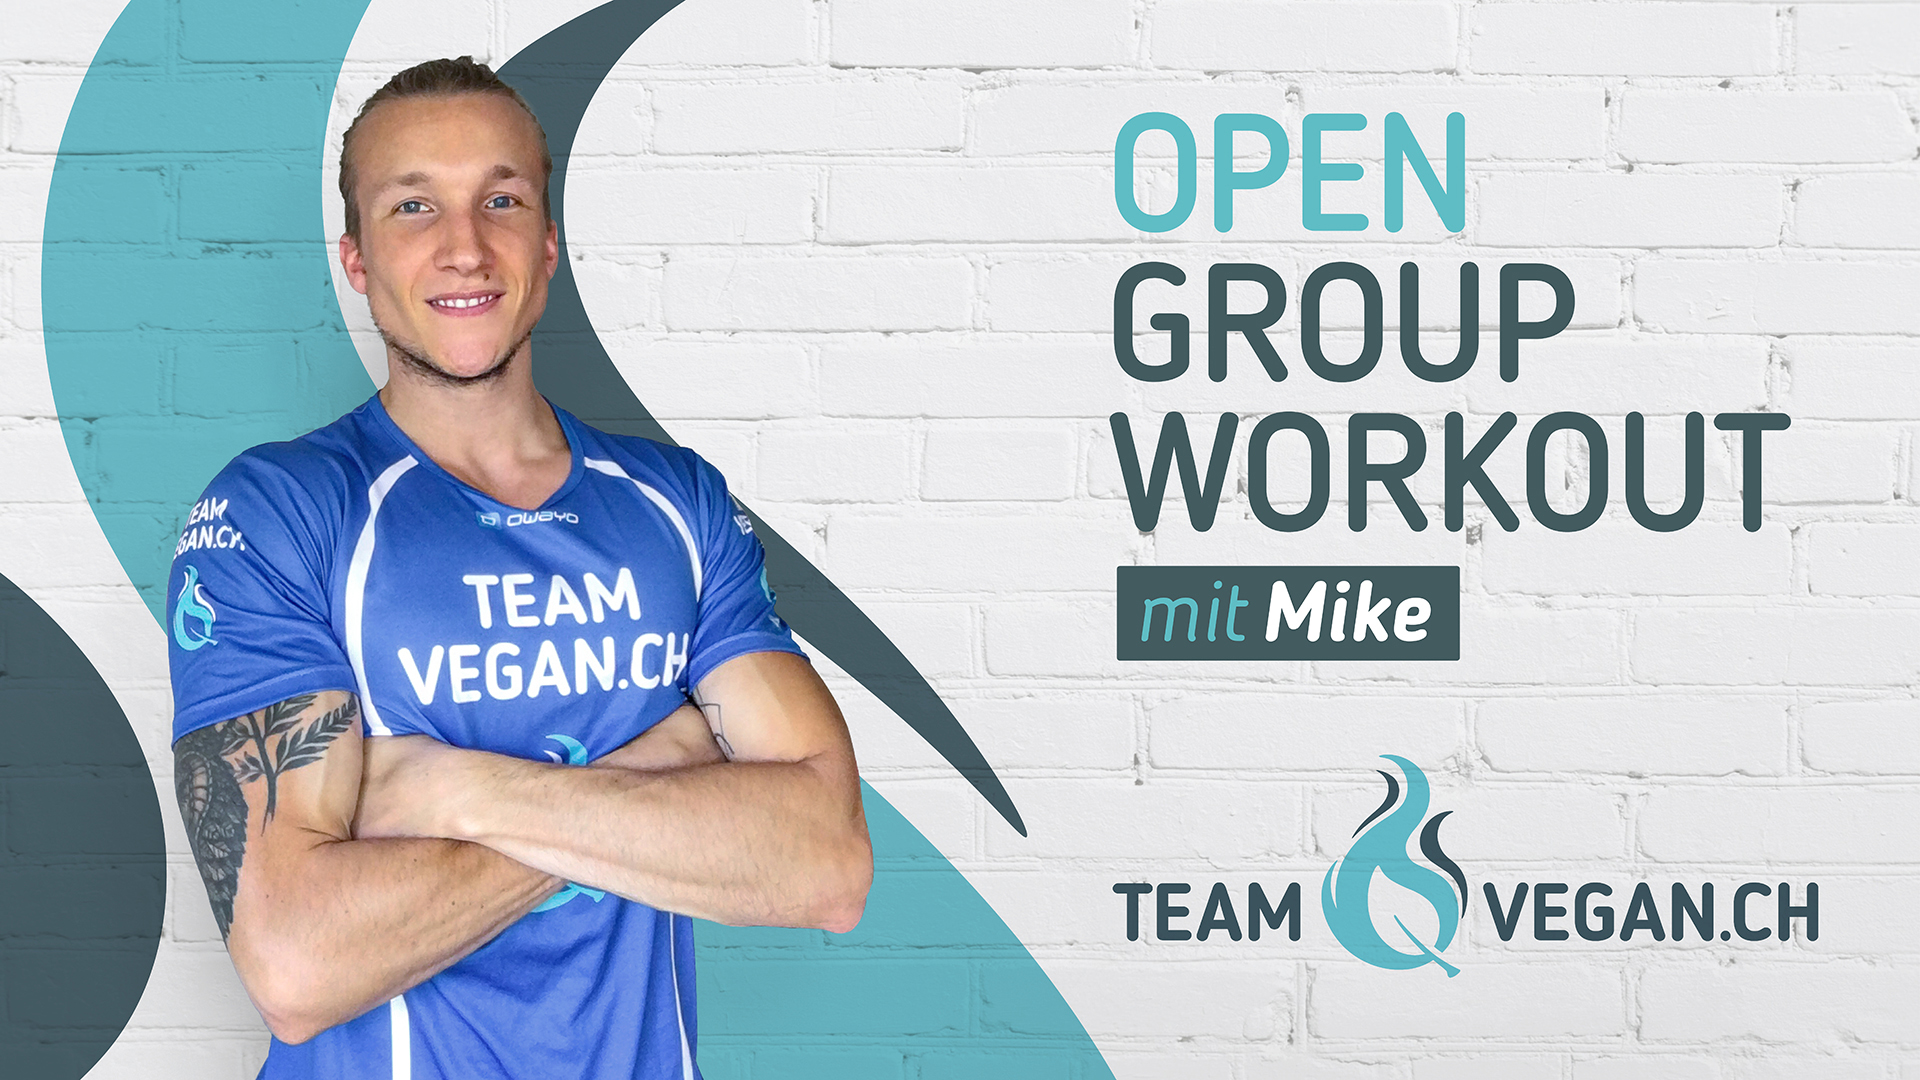 Teamvegan.ch open group workout mit Mike